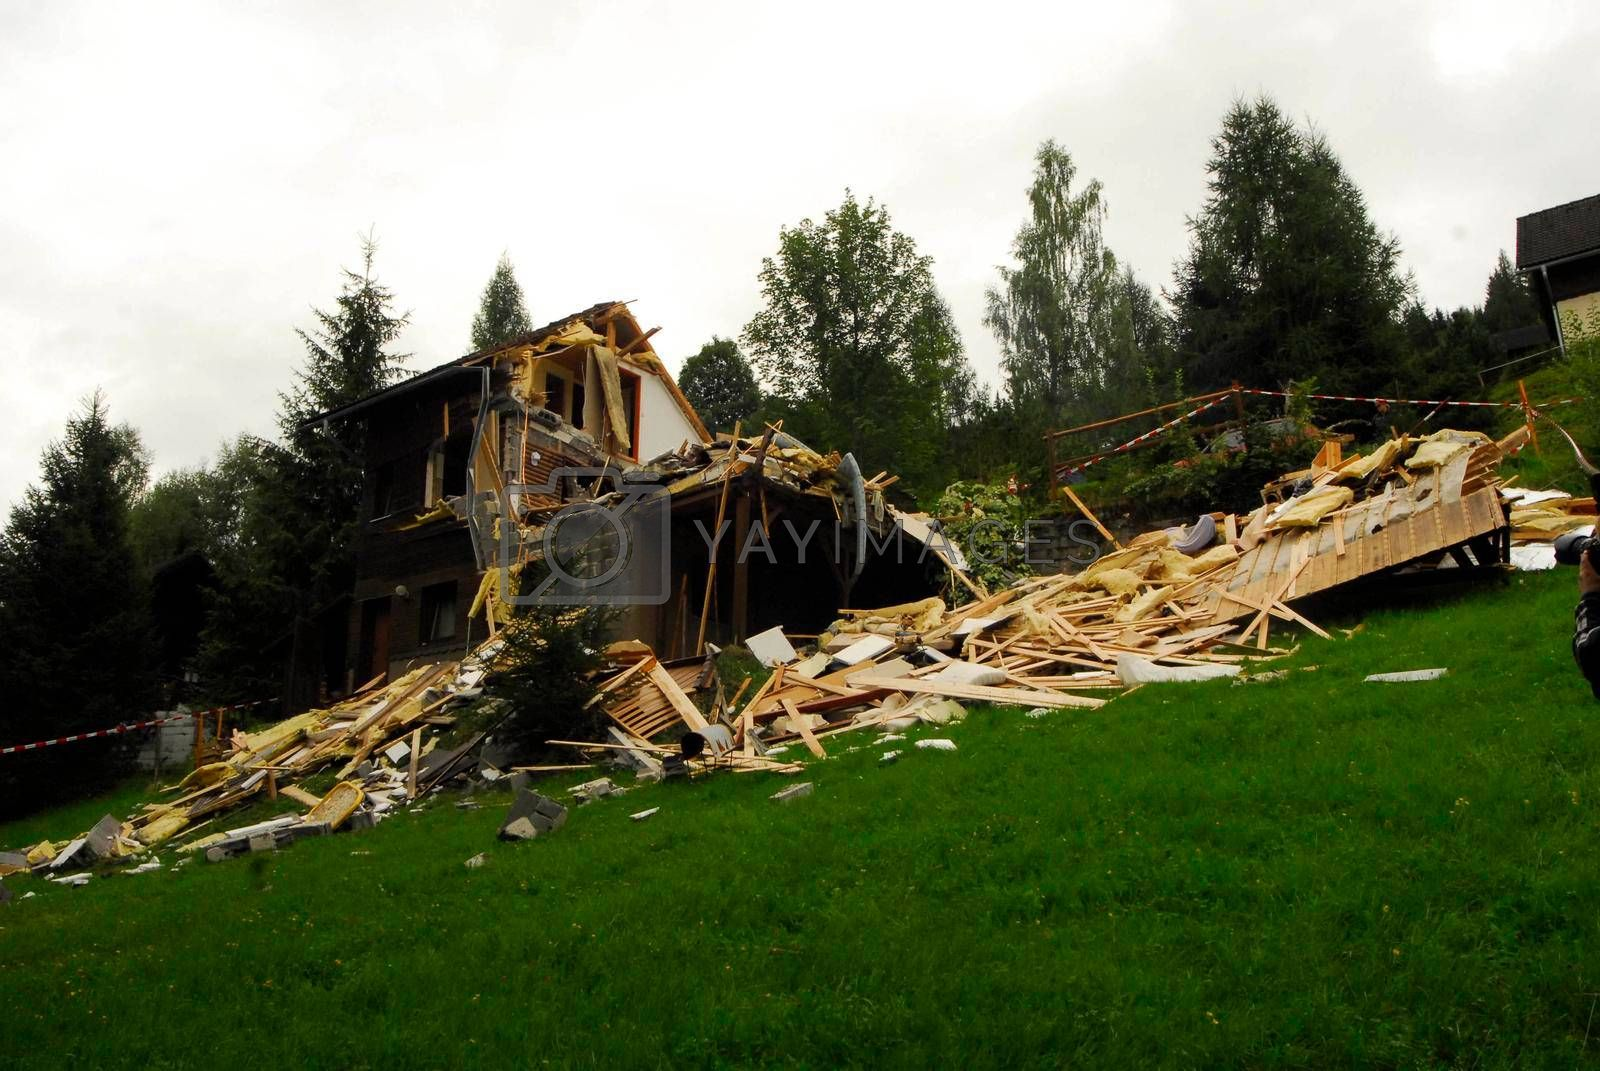 the storm damage after a severe storm, a natural disaster